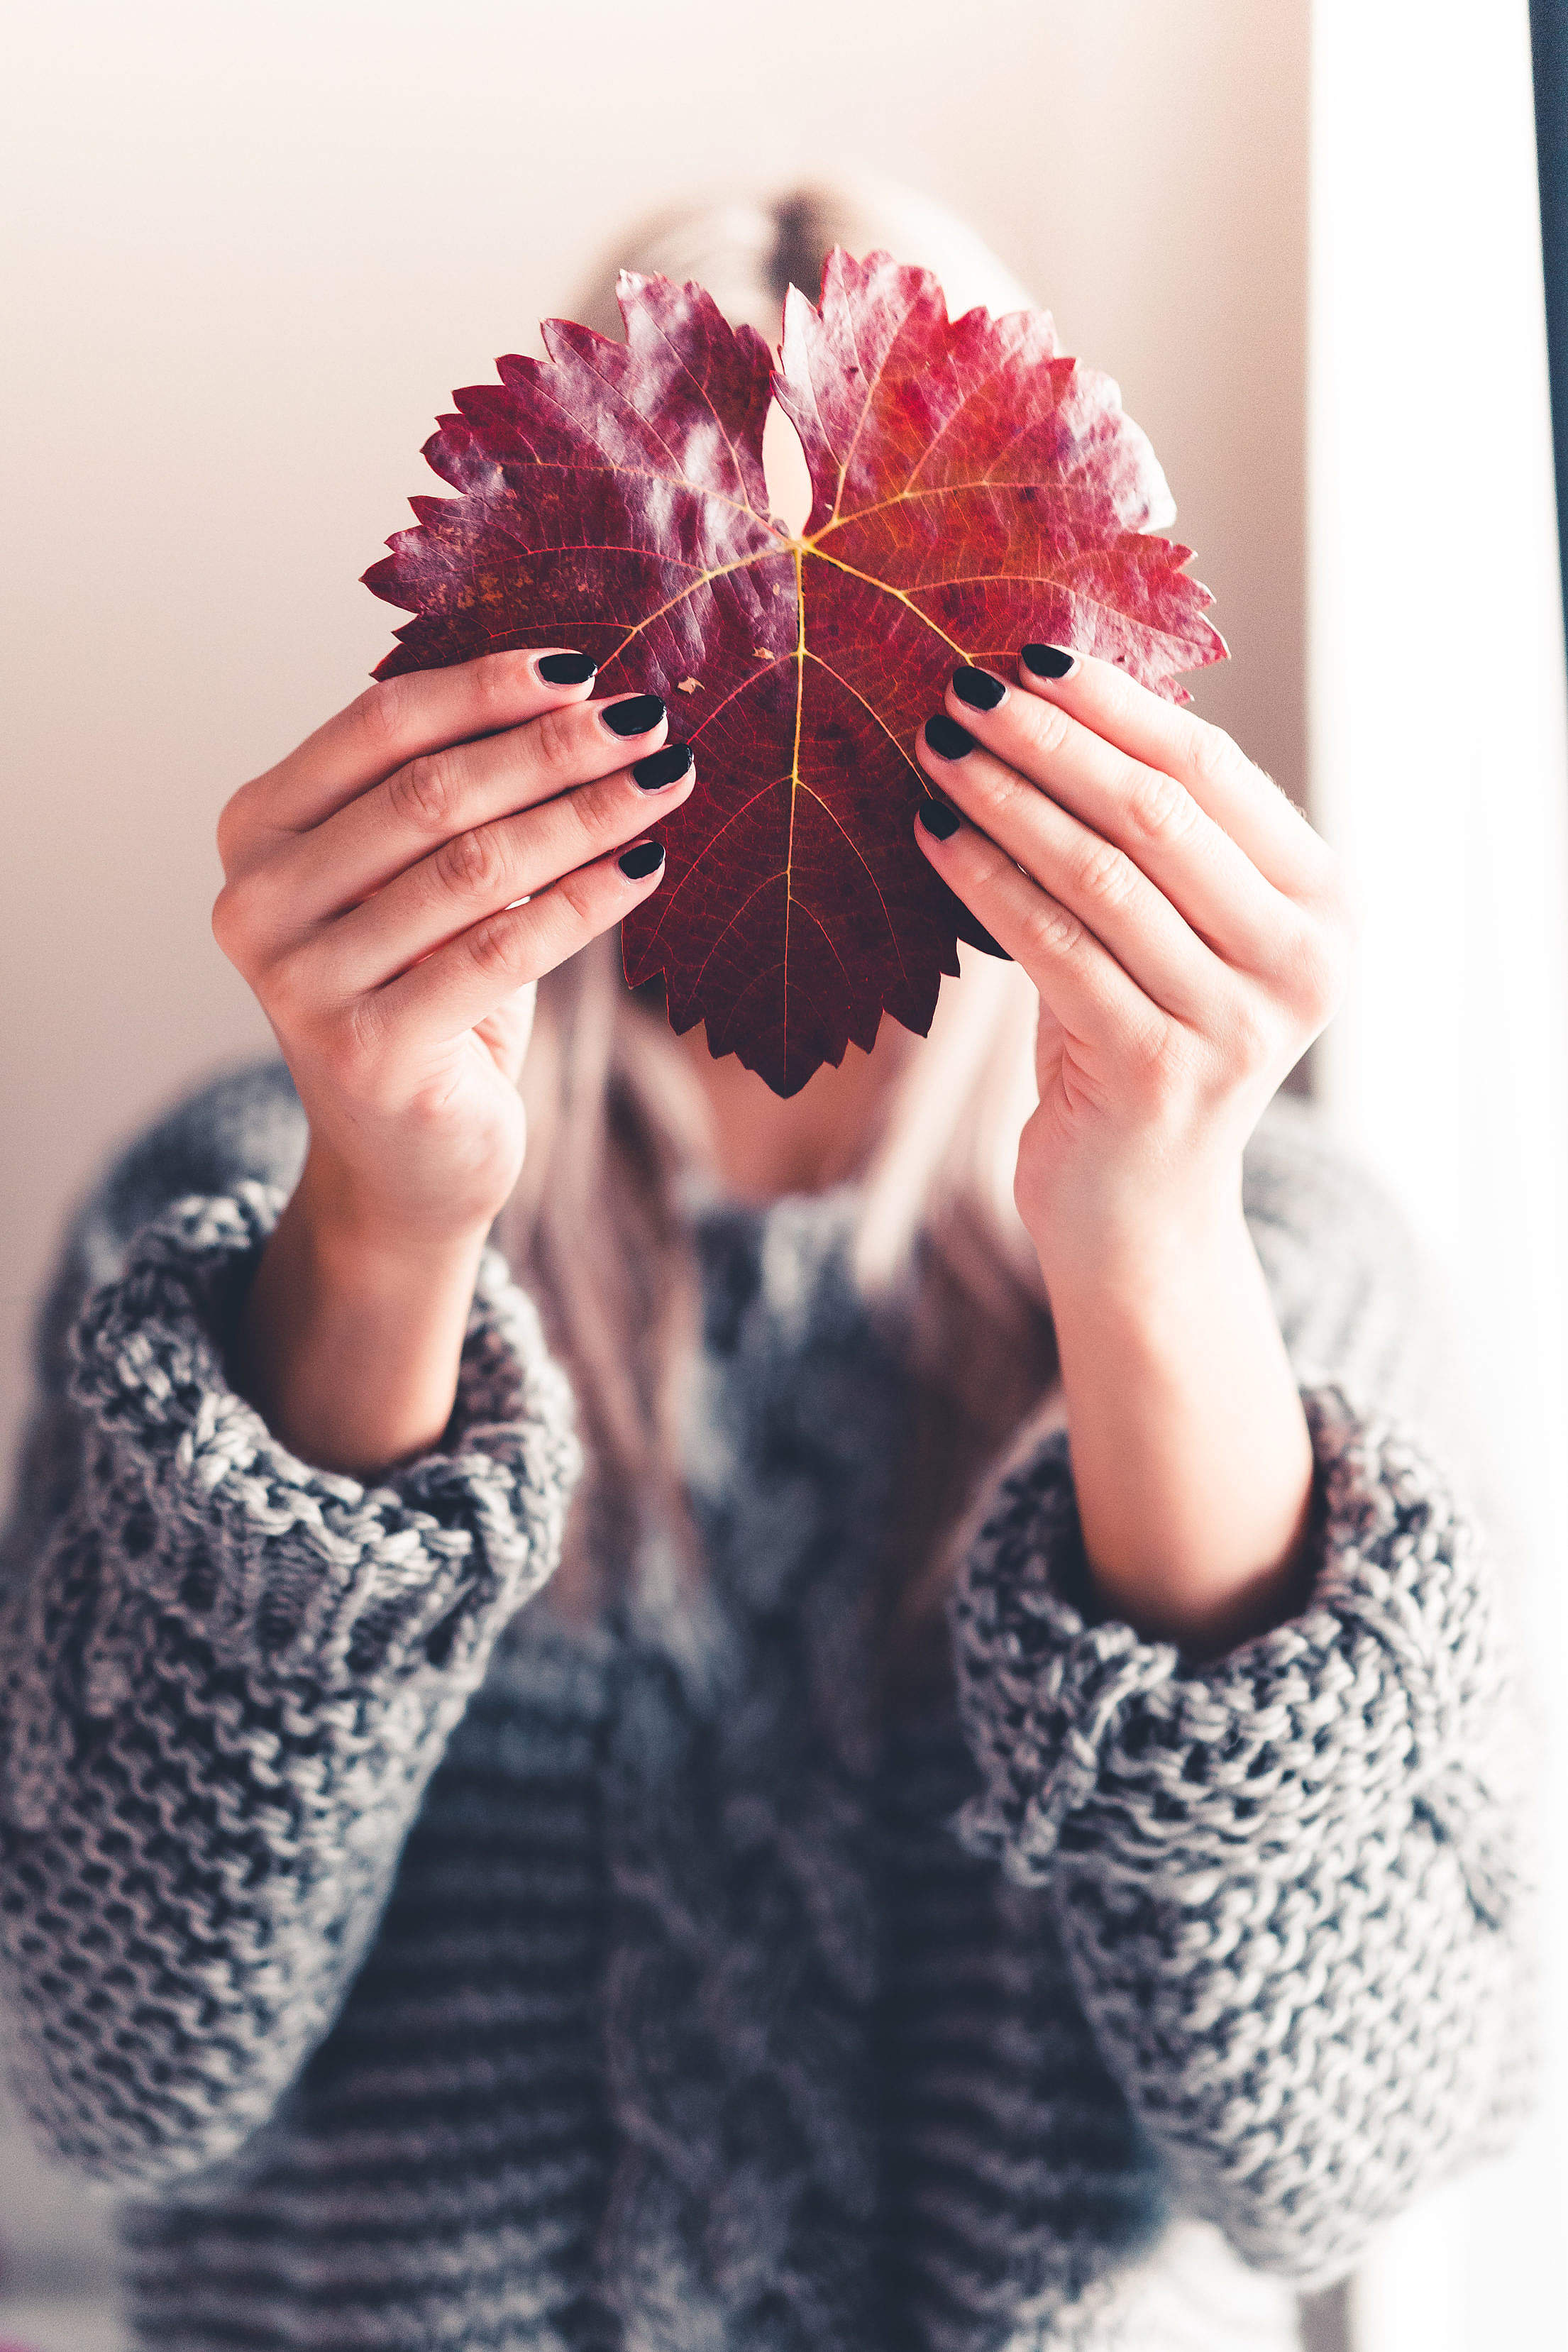 Woman Holding an Autumn Leaf Free Stock Photo